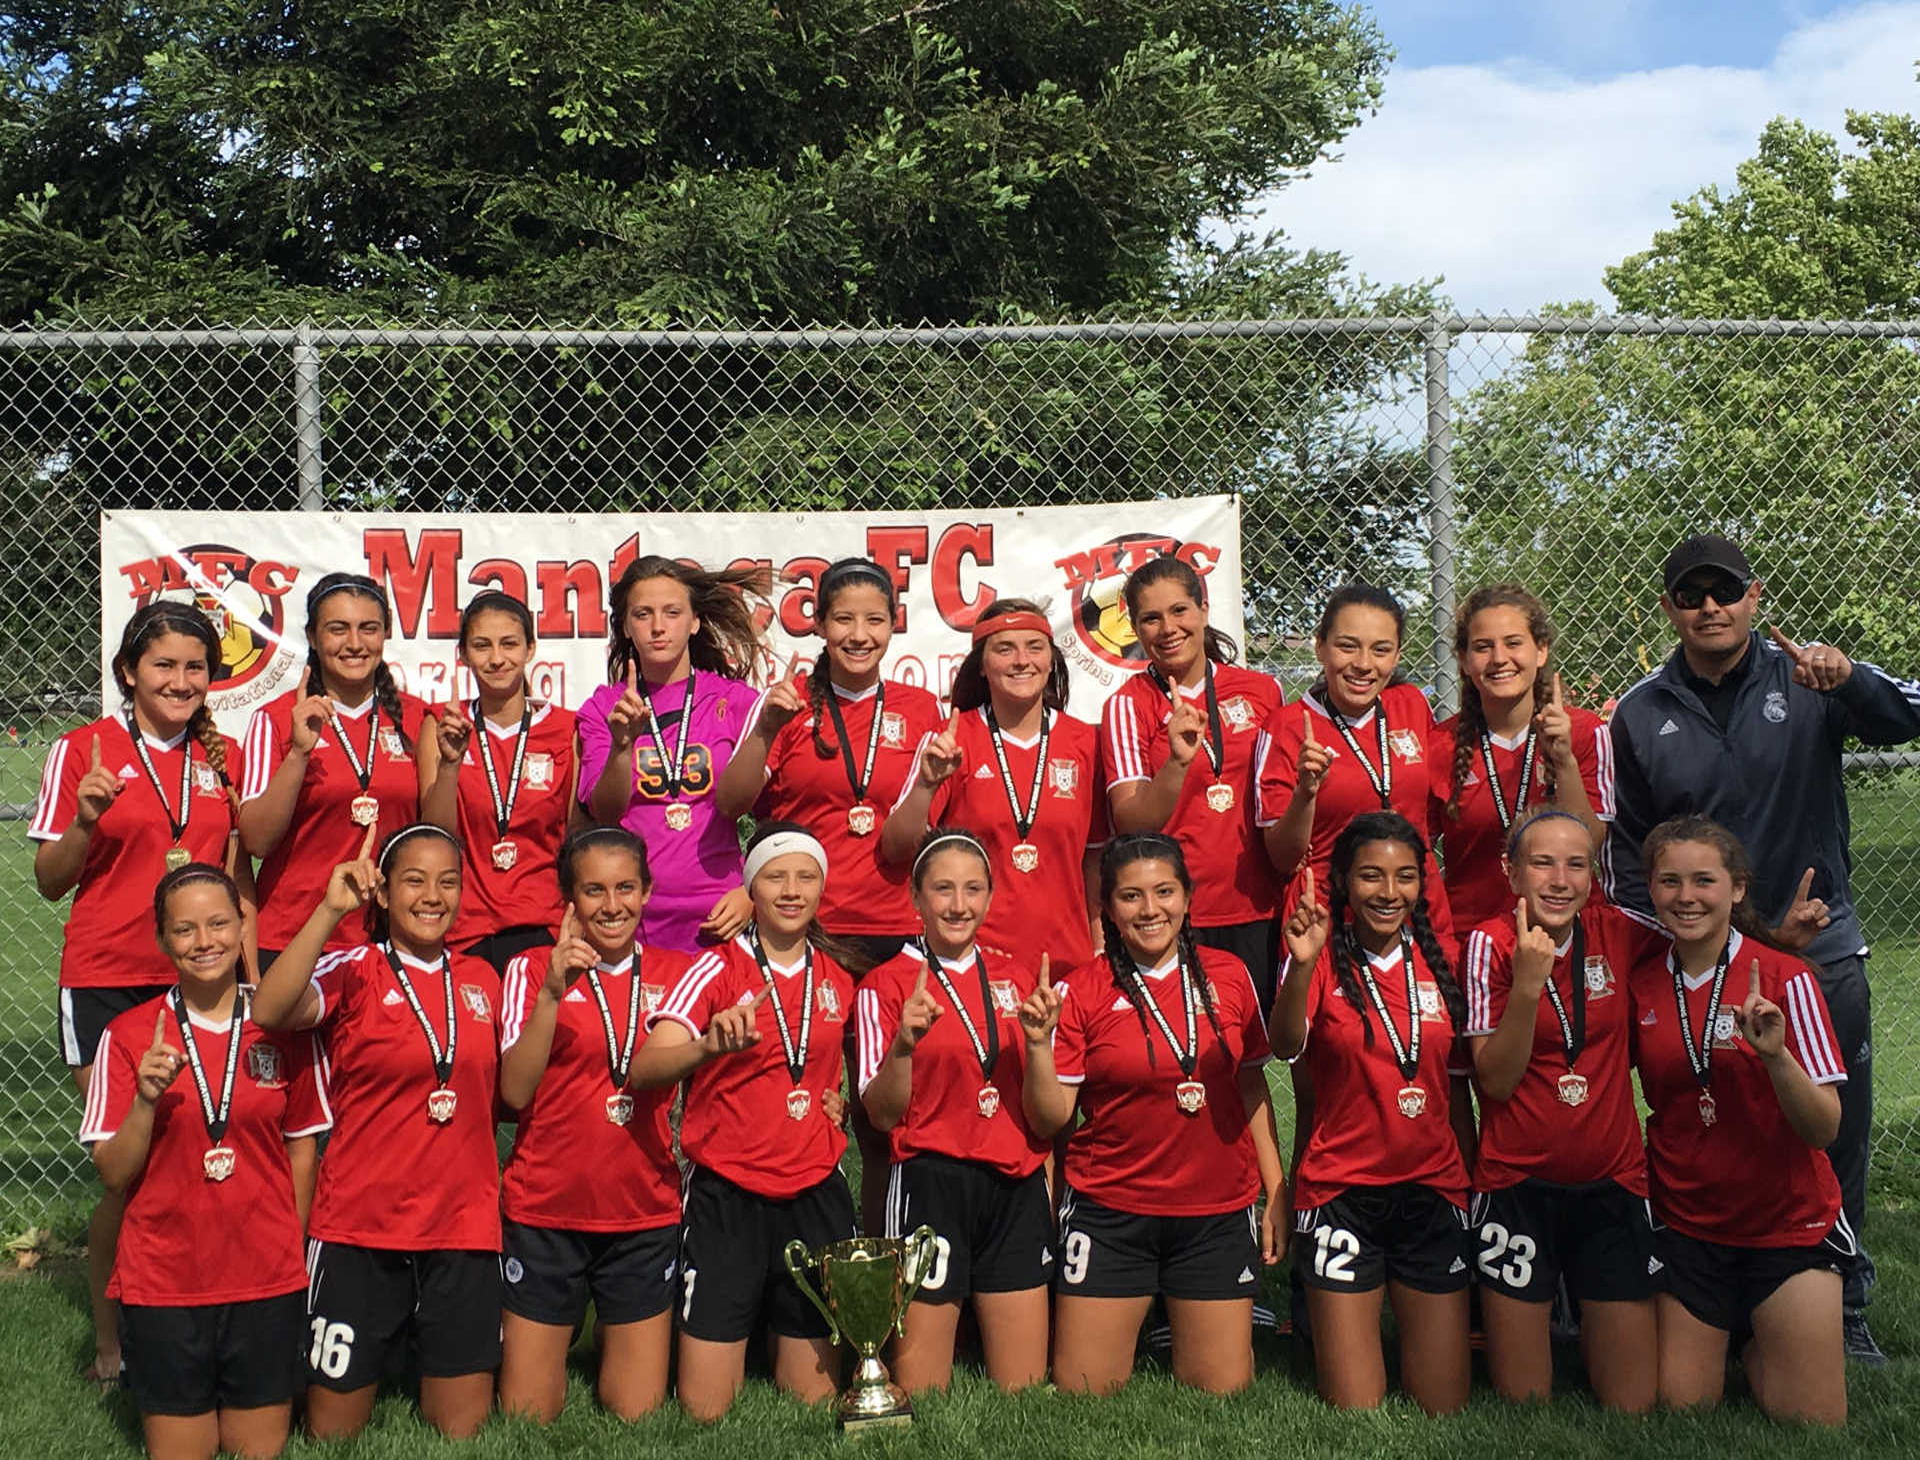 Congratulations are in order for MFC United for winning their second tournament in two weeks!